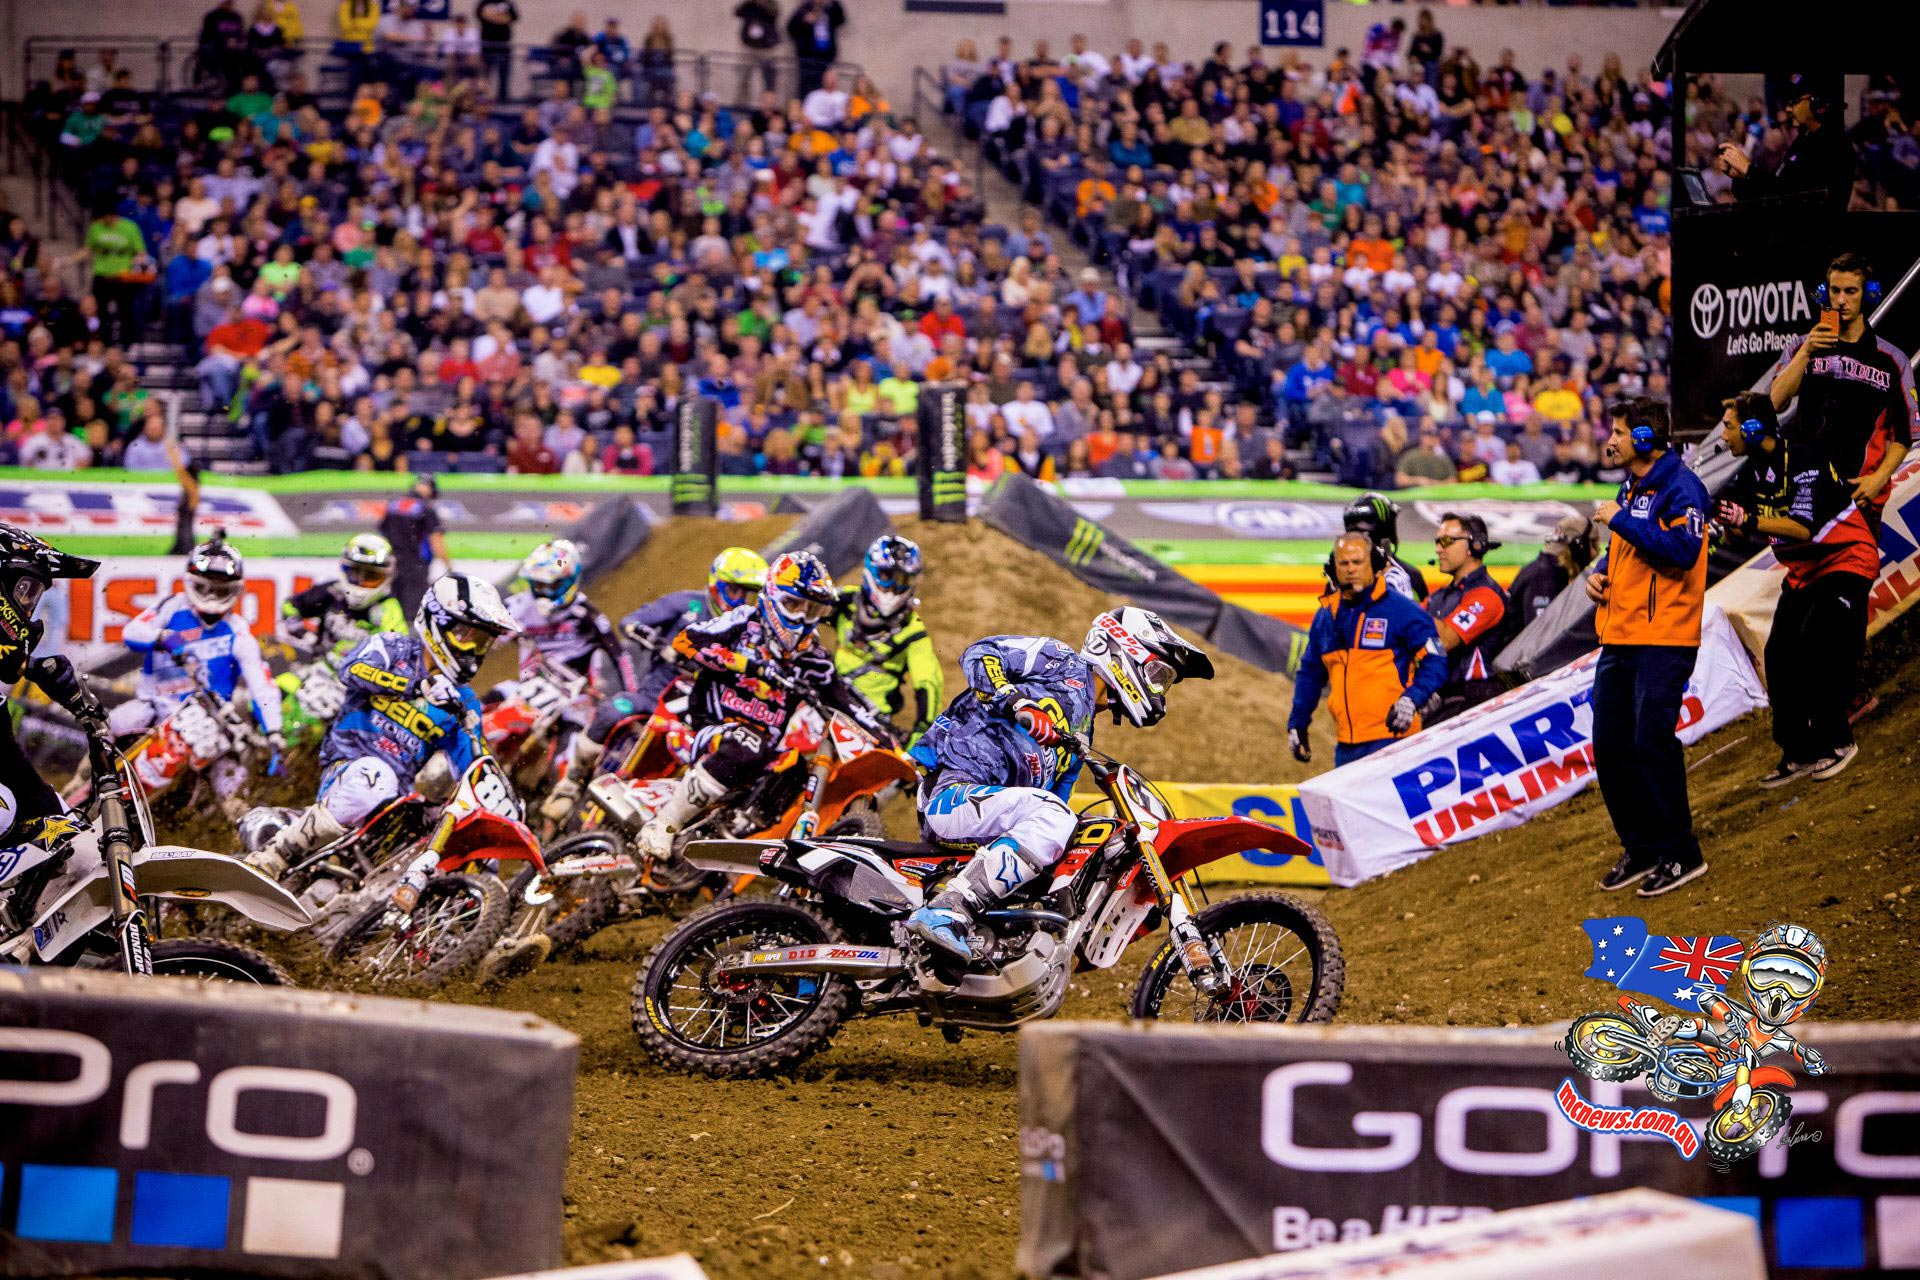 AMA Supercross action from Indianapolis